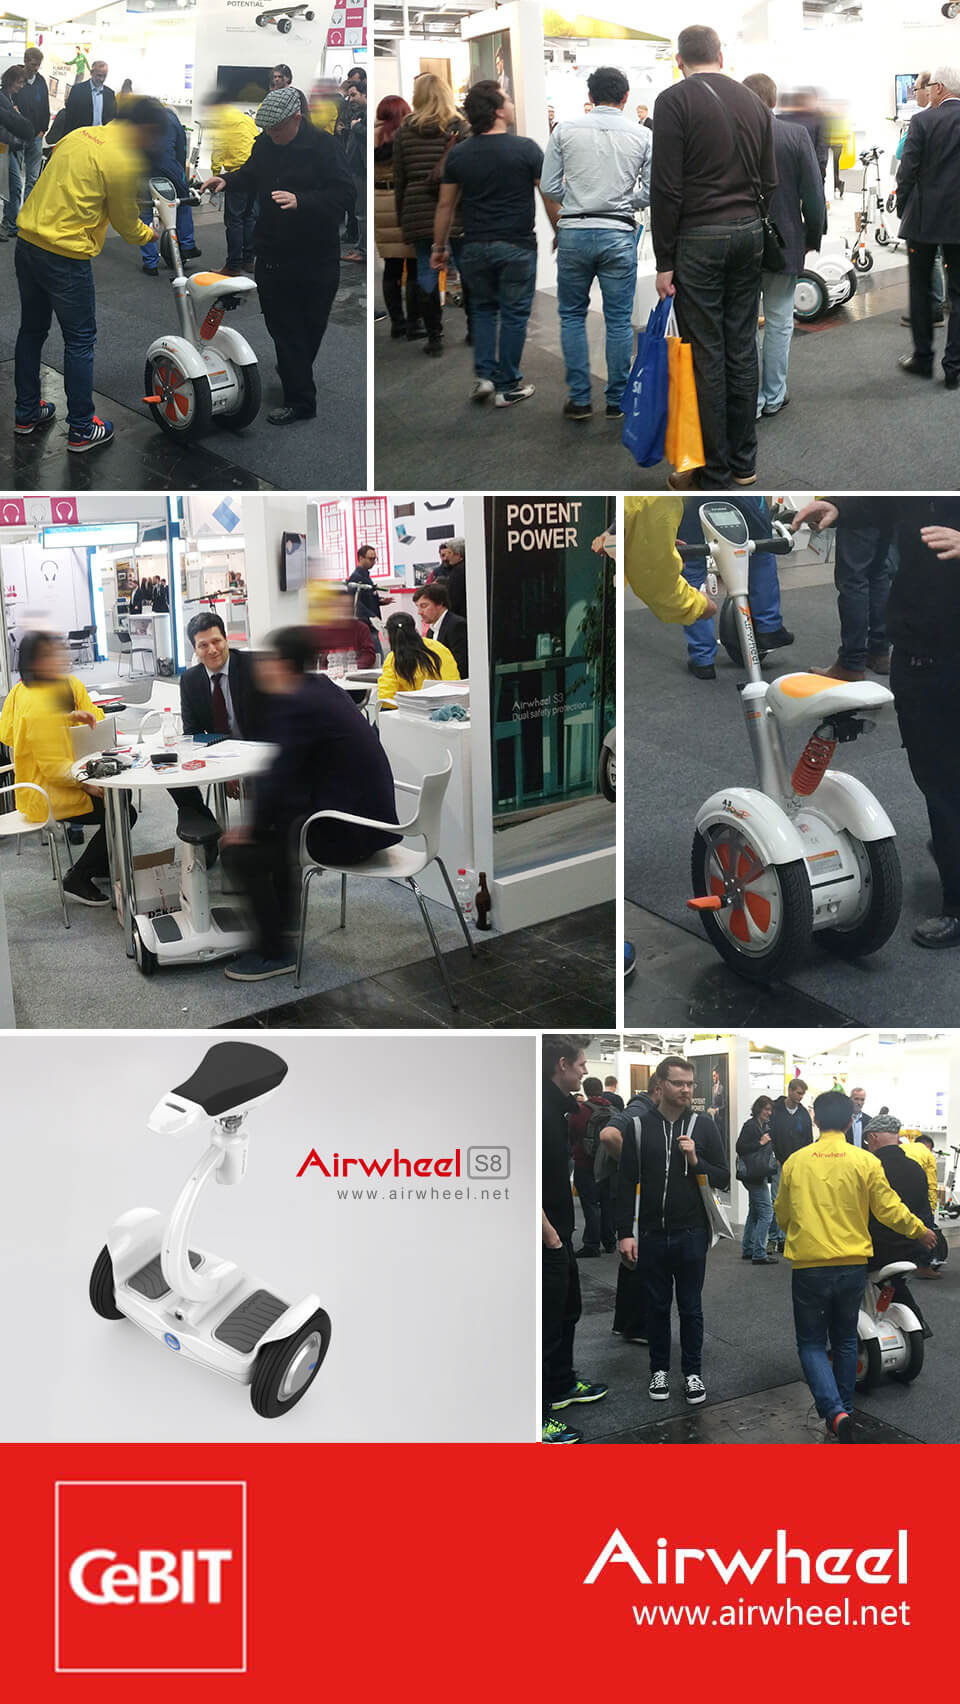 http://www.airwheel.net/scooter/cebit-3.14-2.jpg